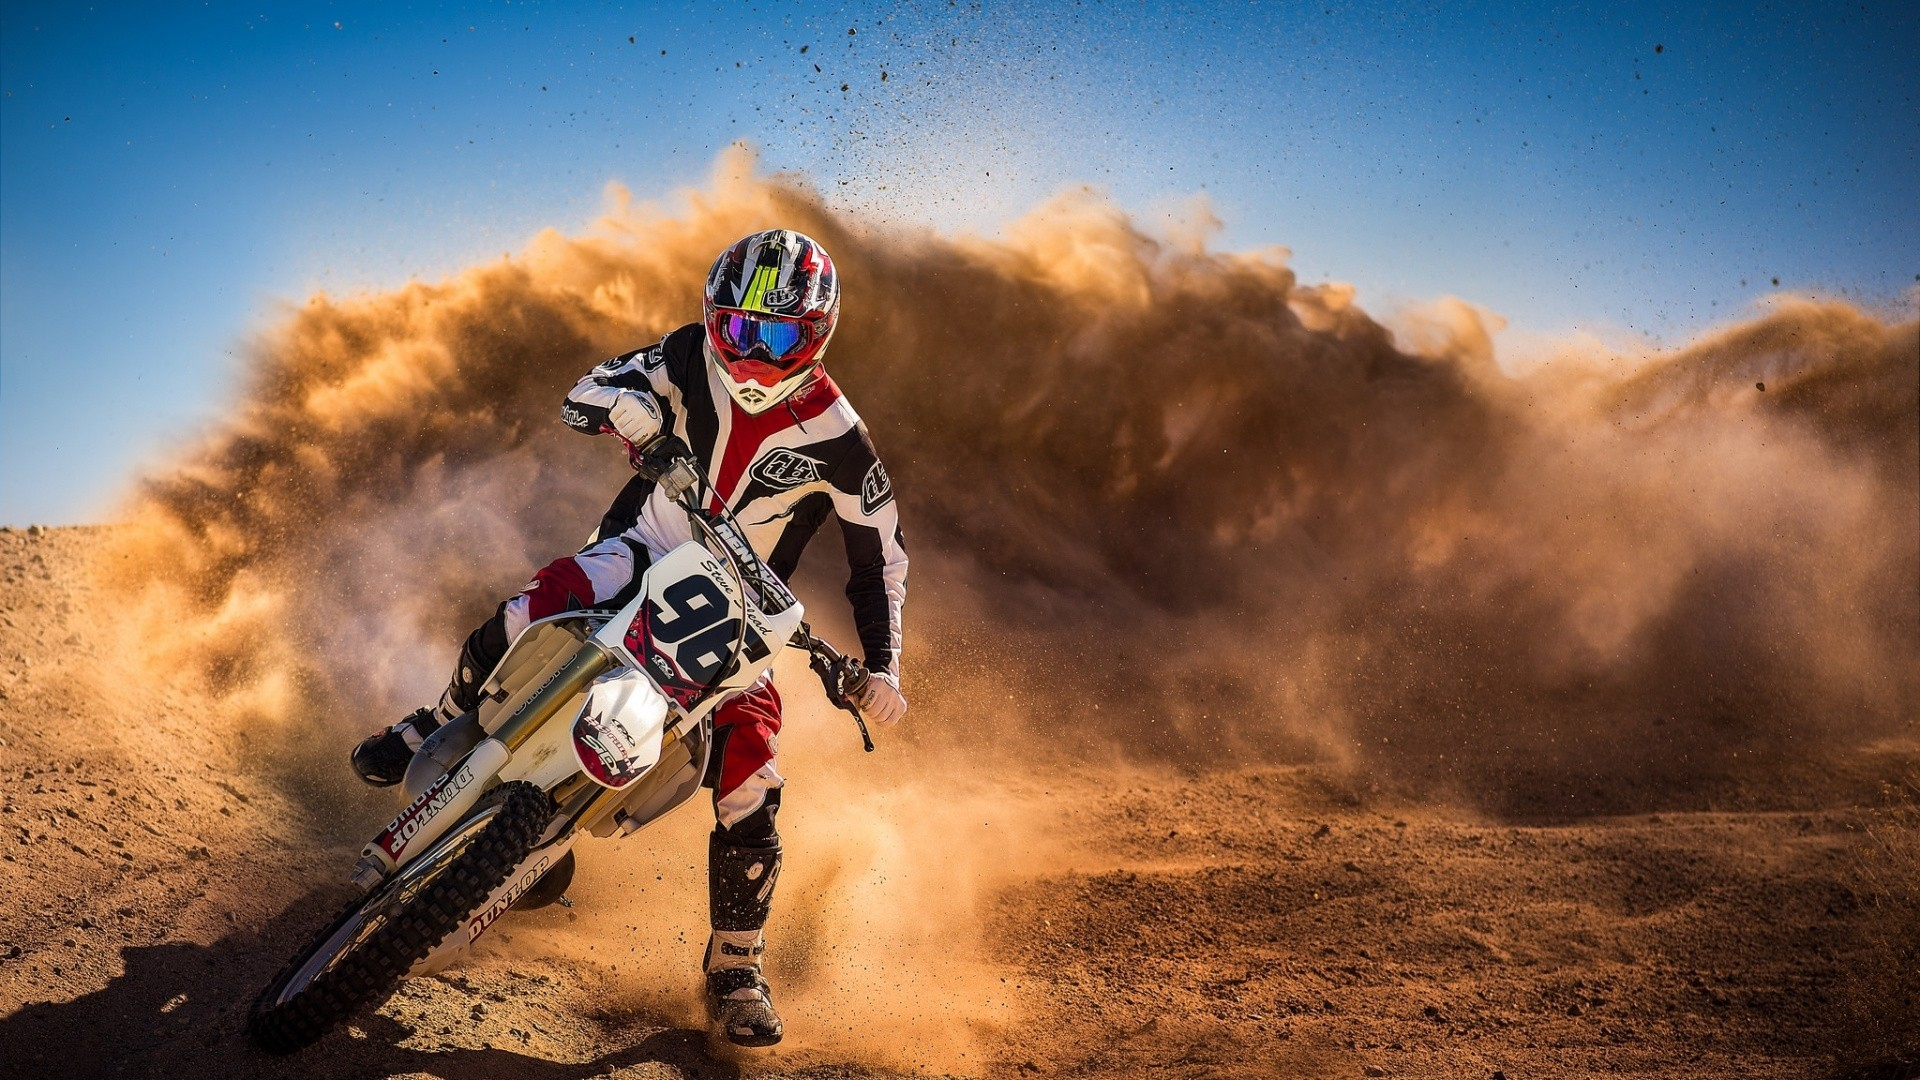 Dirt Bike HD Wallpaper